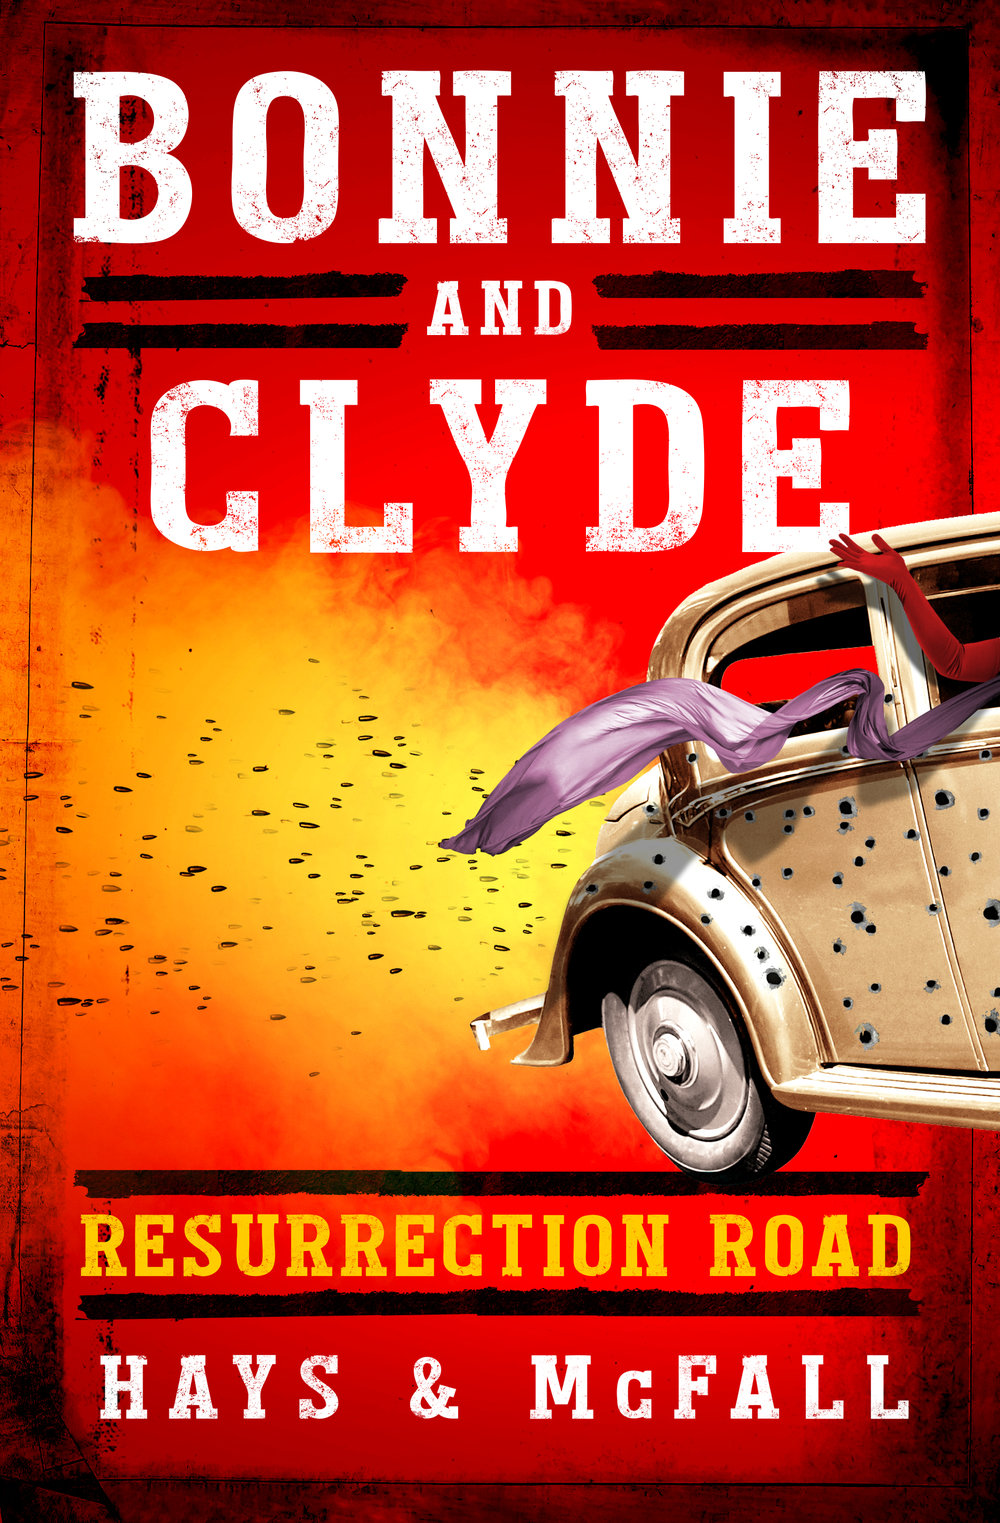 Who wants to kill the president? In the first book, Bonnie and Clyde are spared a gruesome death and put to work immediately on an assignment to thwart an assassination plot against FDR by a cabal of industrialists bent on stopping the New Deal polices.